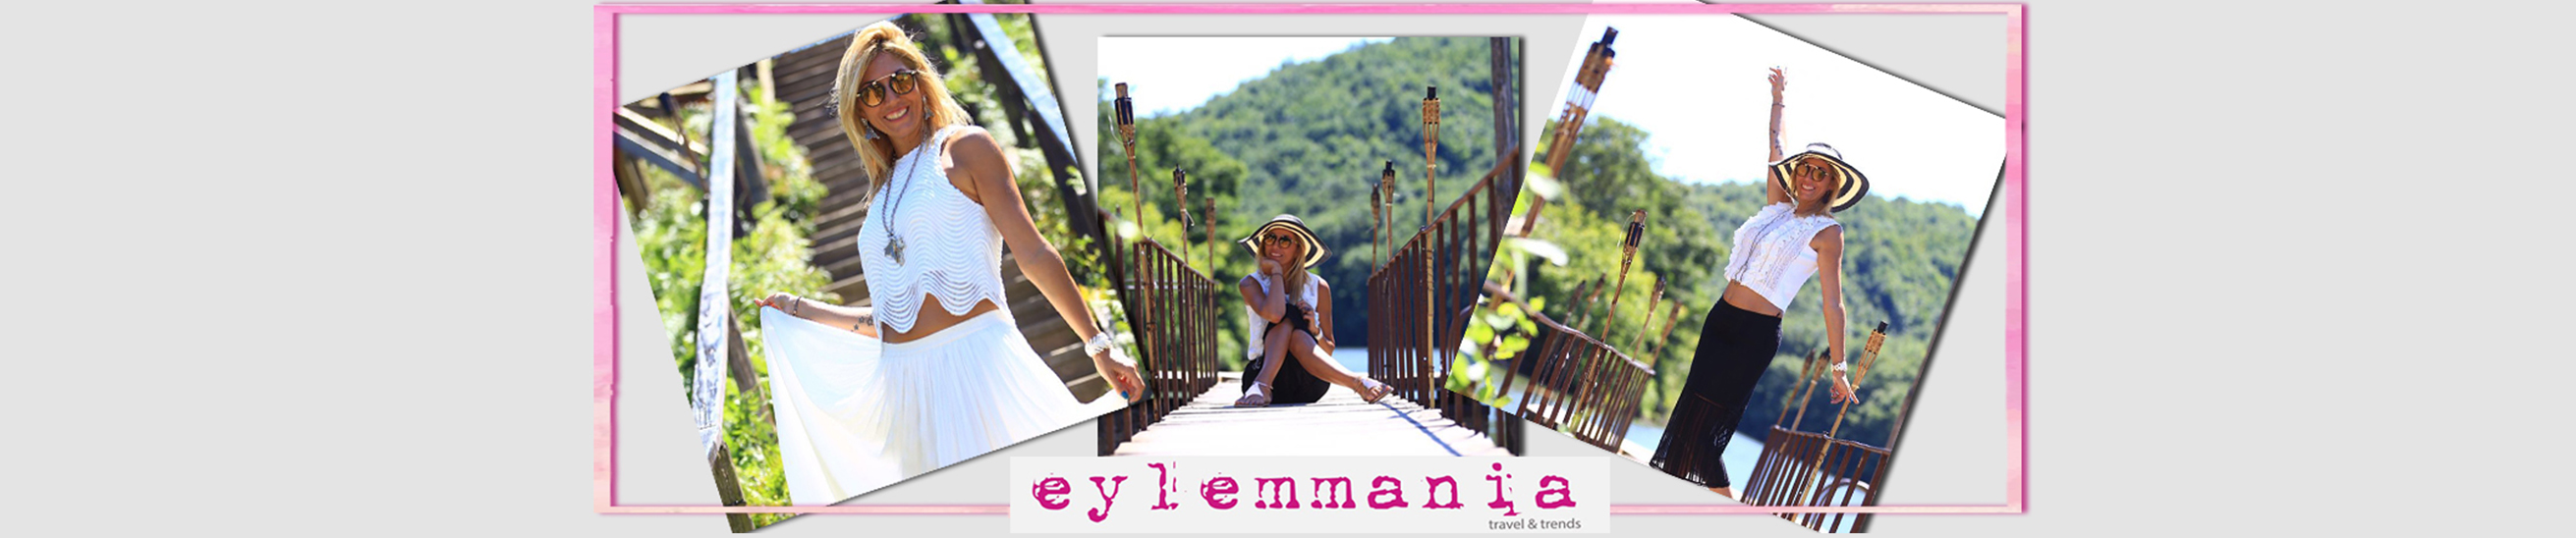 27952-eylemmania-header-copy